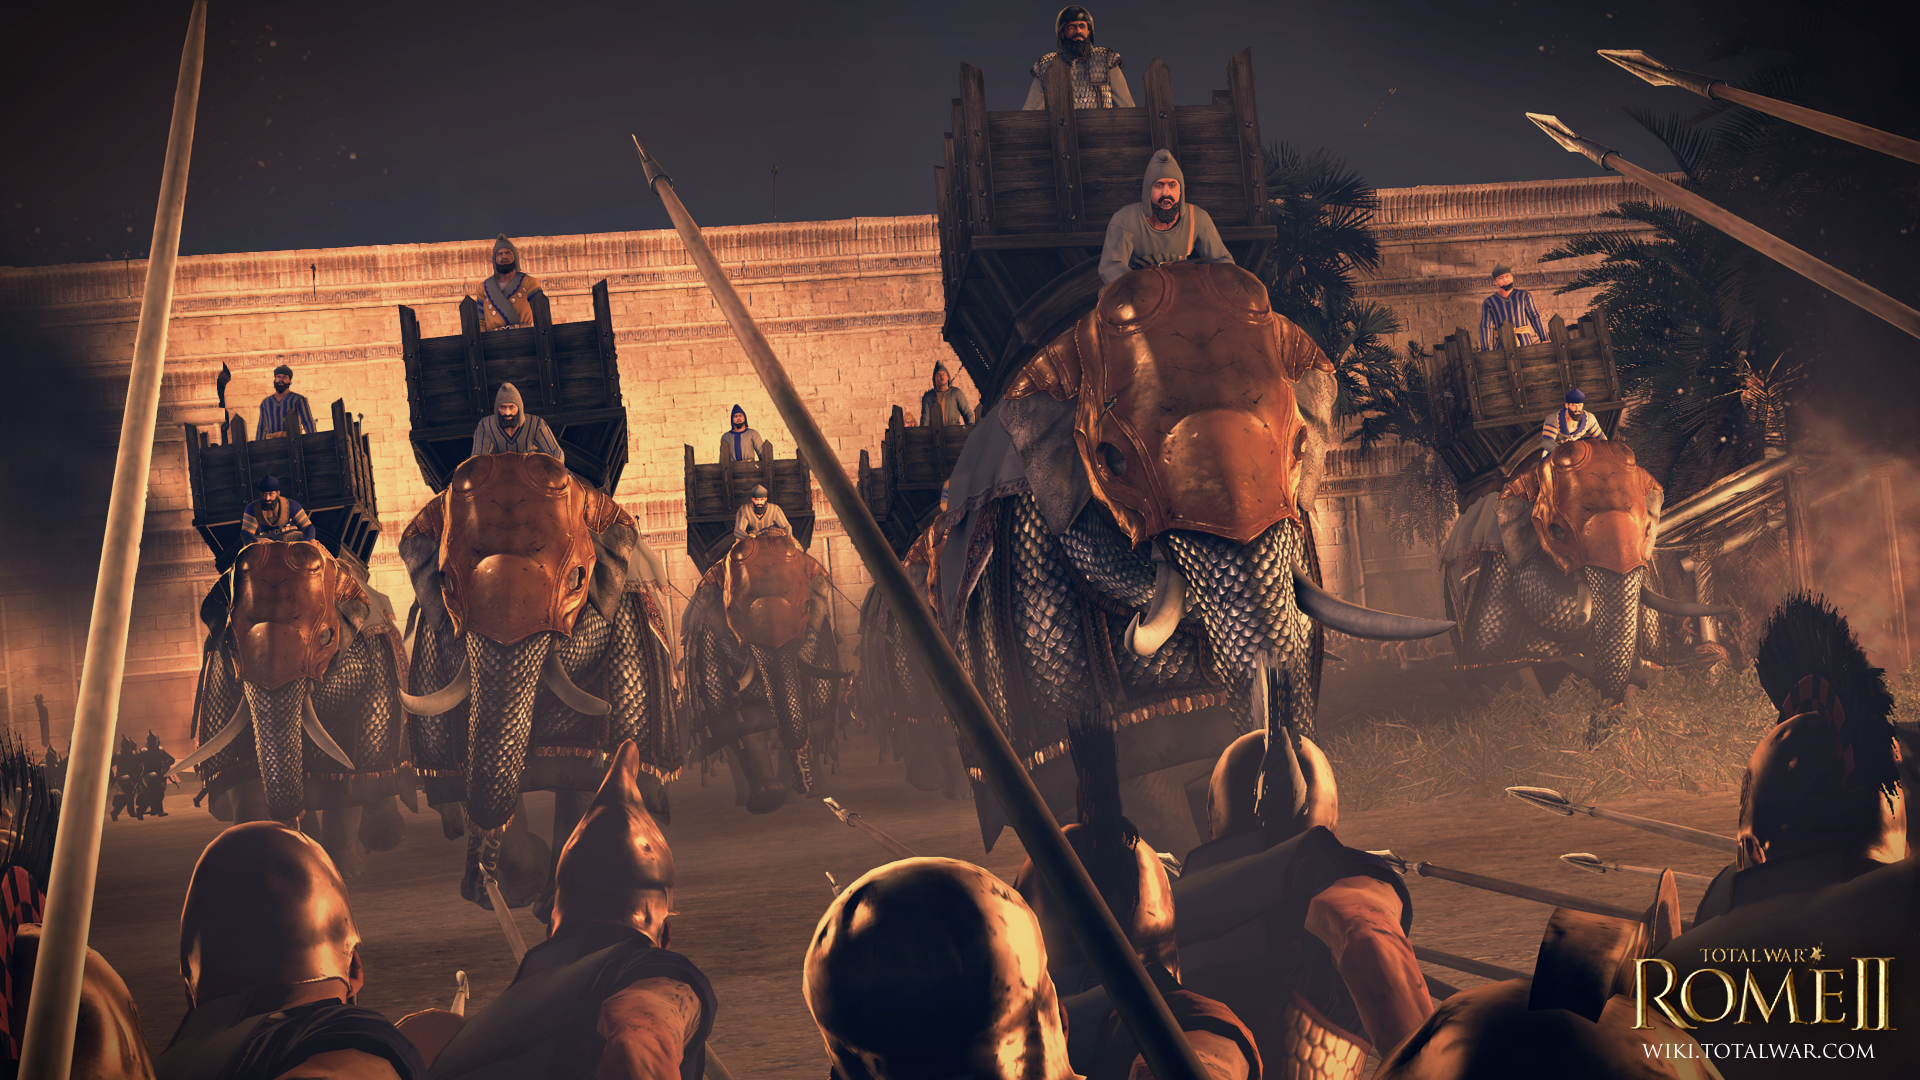 Total War Rome Ii Gets Free Seleucid Faction Dlc And Steam